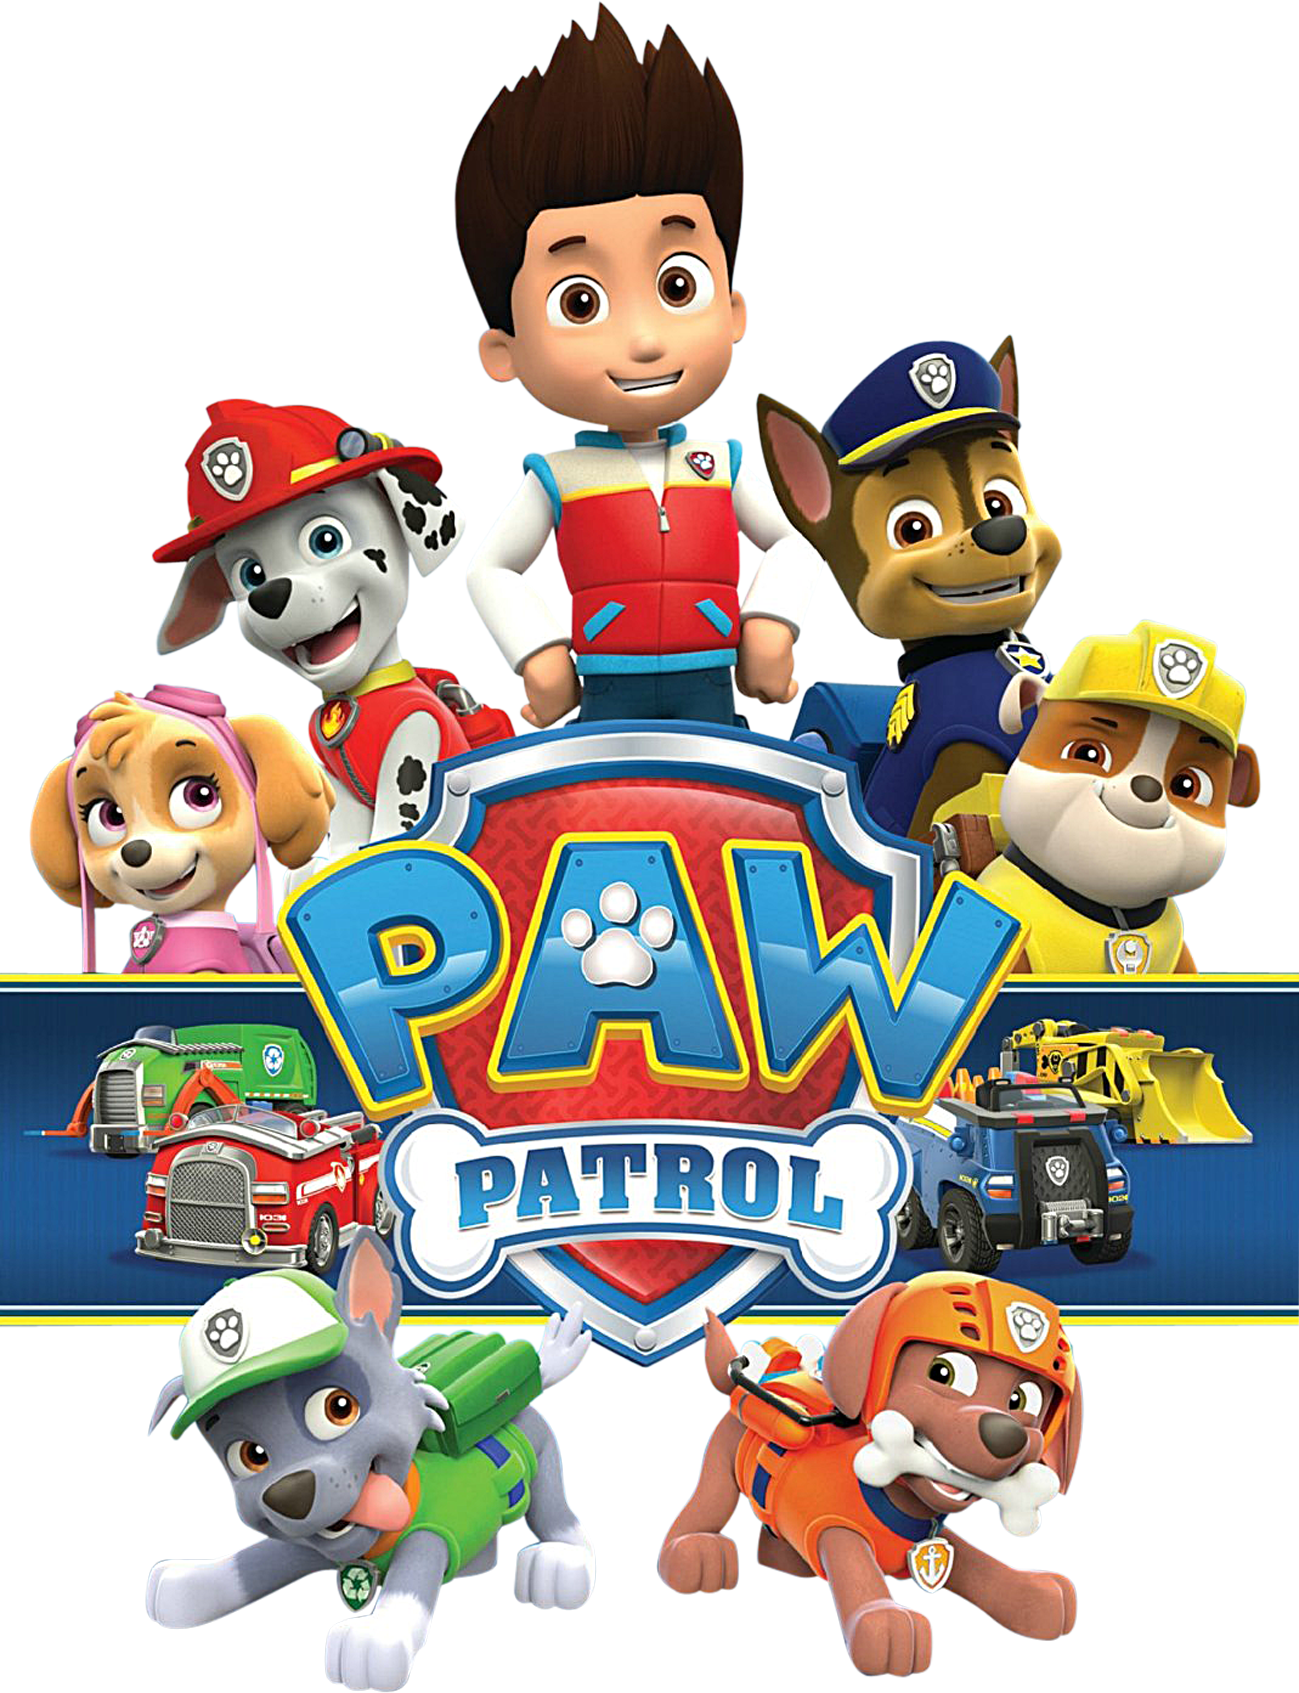 Paw patrol free clipart banner black and white Paw Patrol Birthday Clipart - clipartsgram.com banner black and white